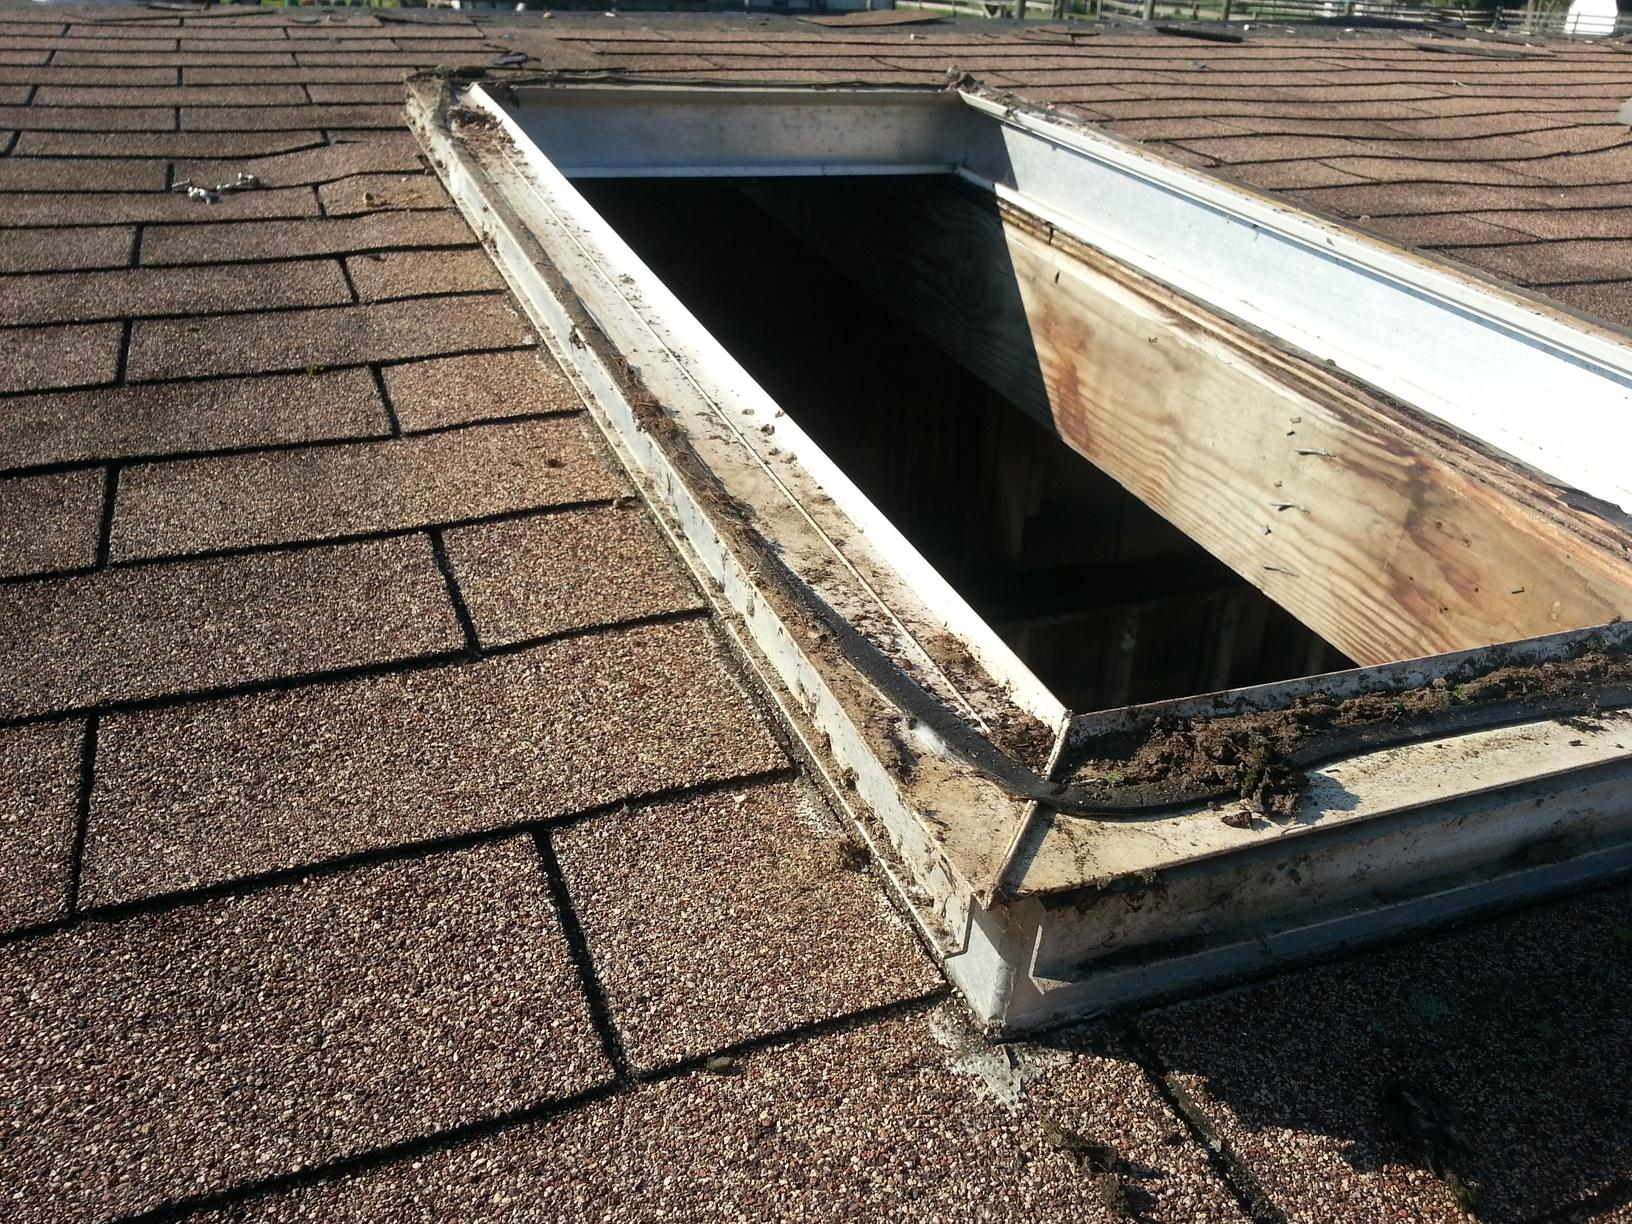 Asphalt Shingle Roof that Needs Replacement